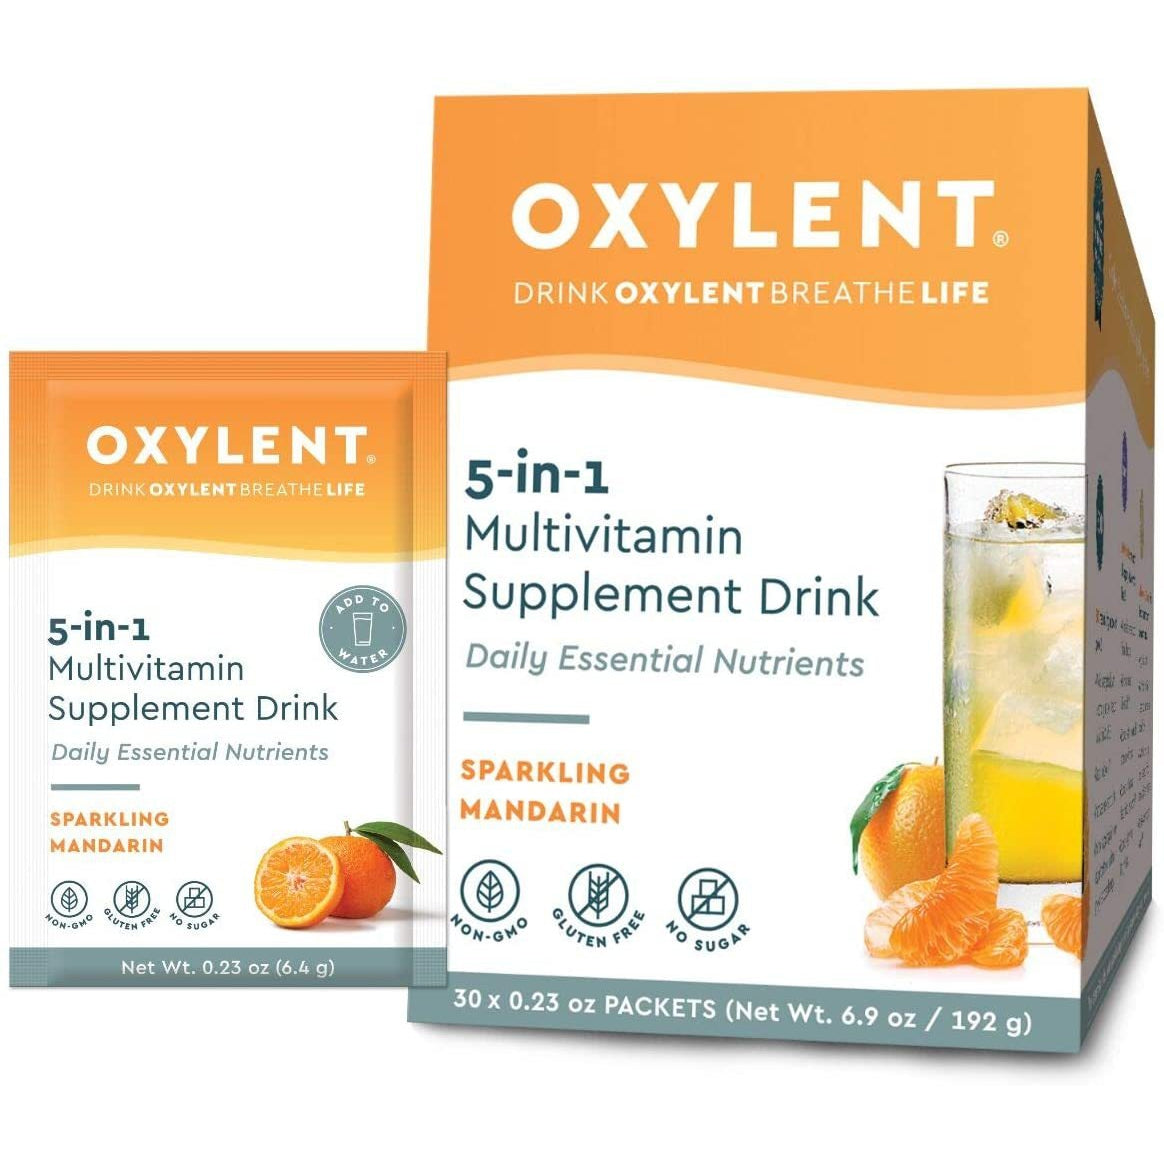 Oxylent Multi Vitamin supplement drink-Nordic